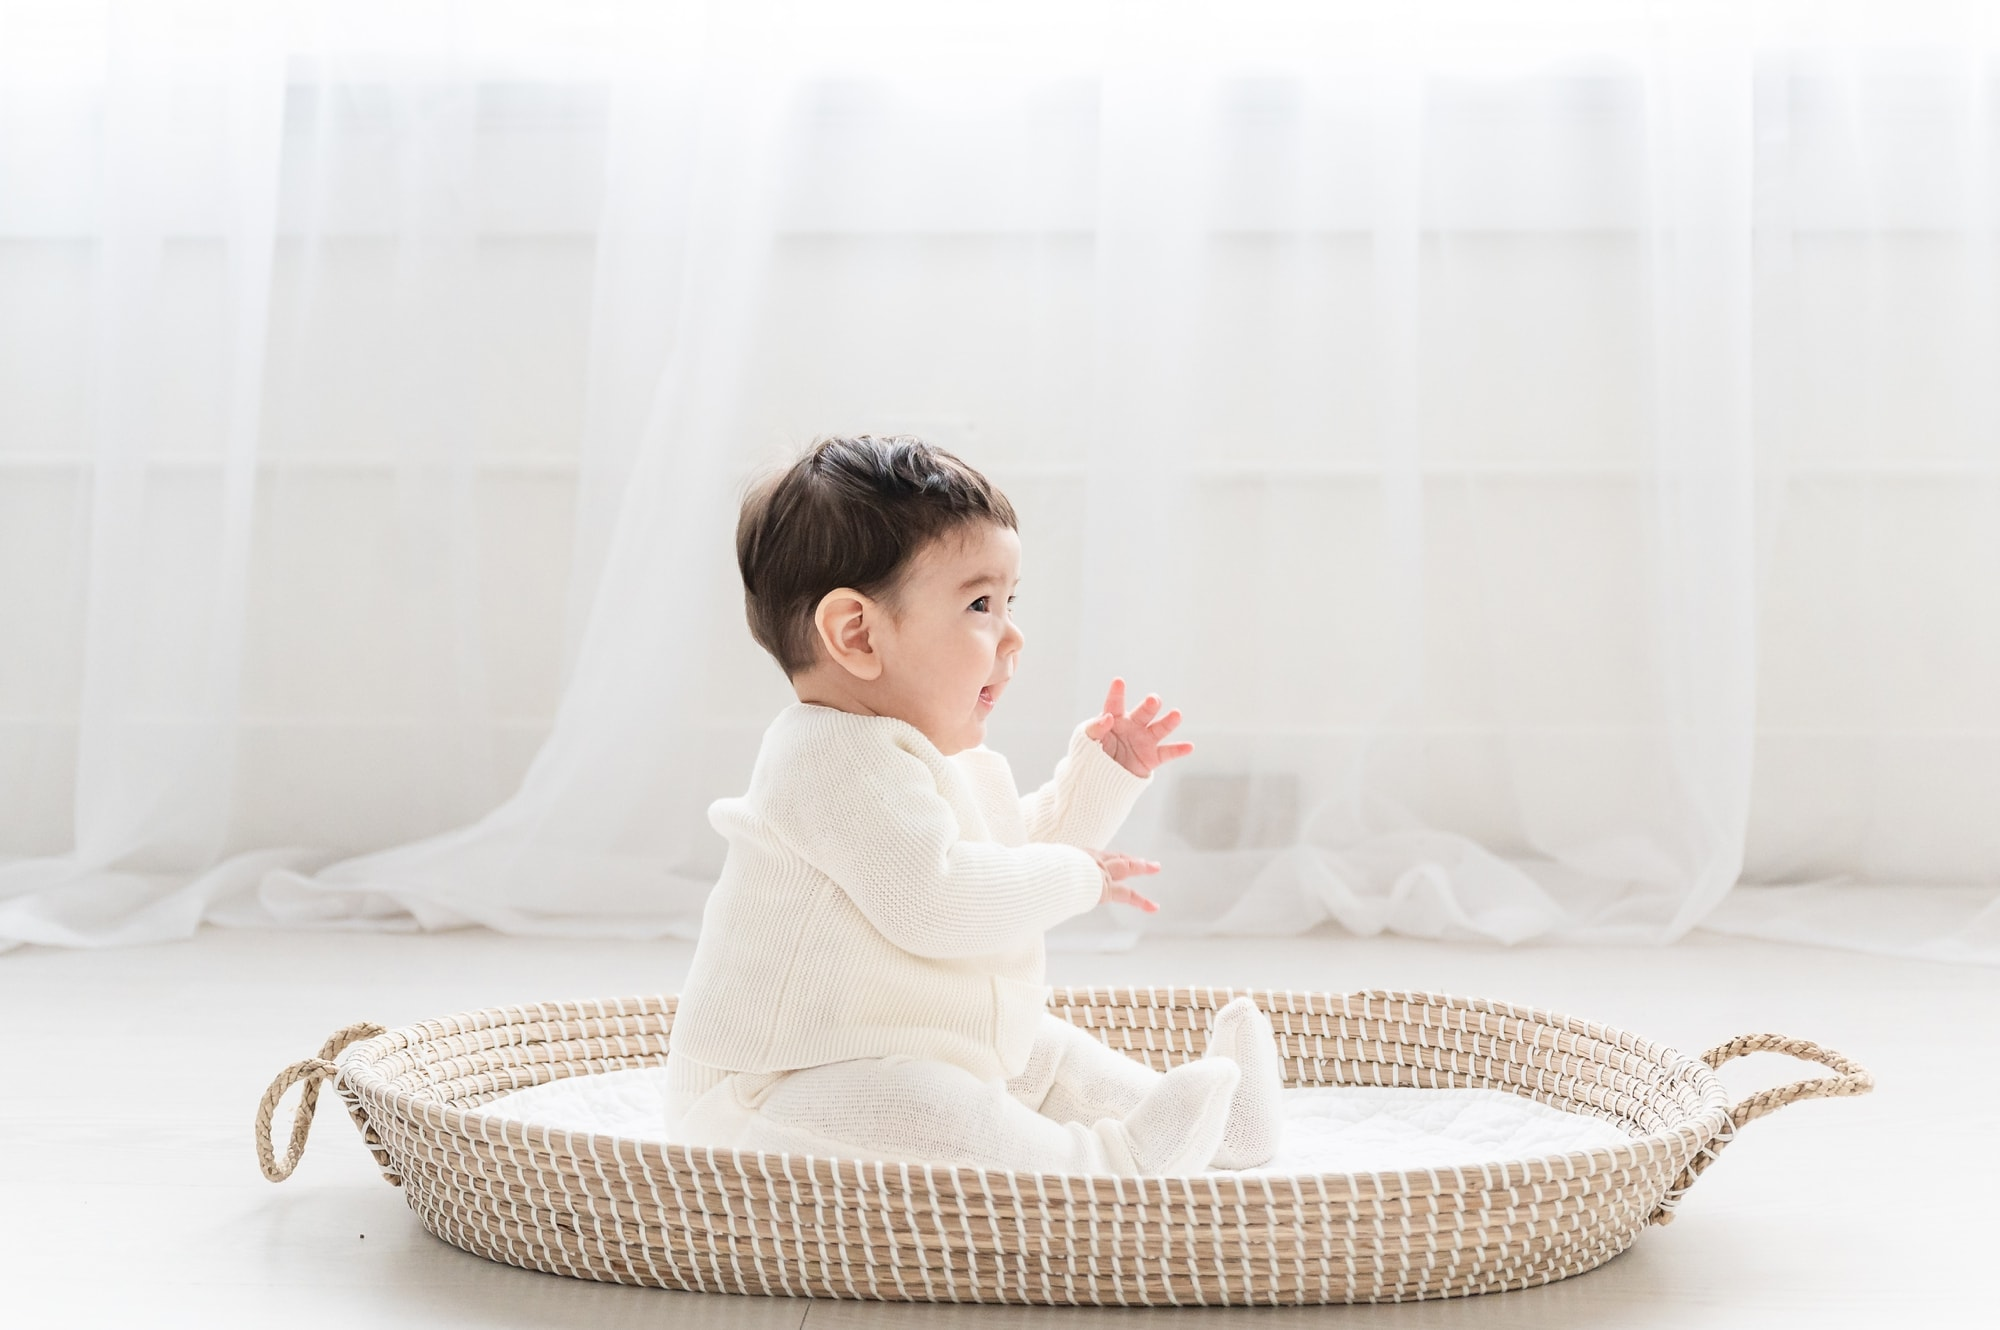 6 month old photo shoot with baby boy sitting in Moses basket. Photo by Aimee Hamilton Photography